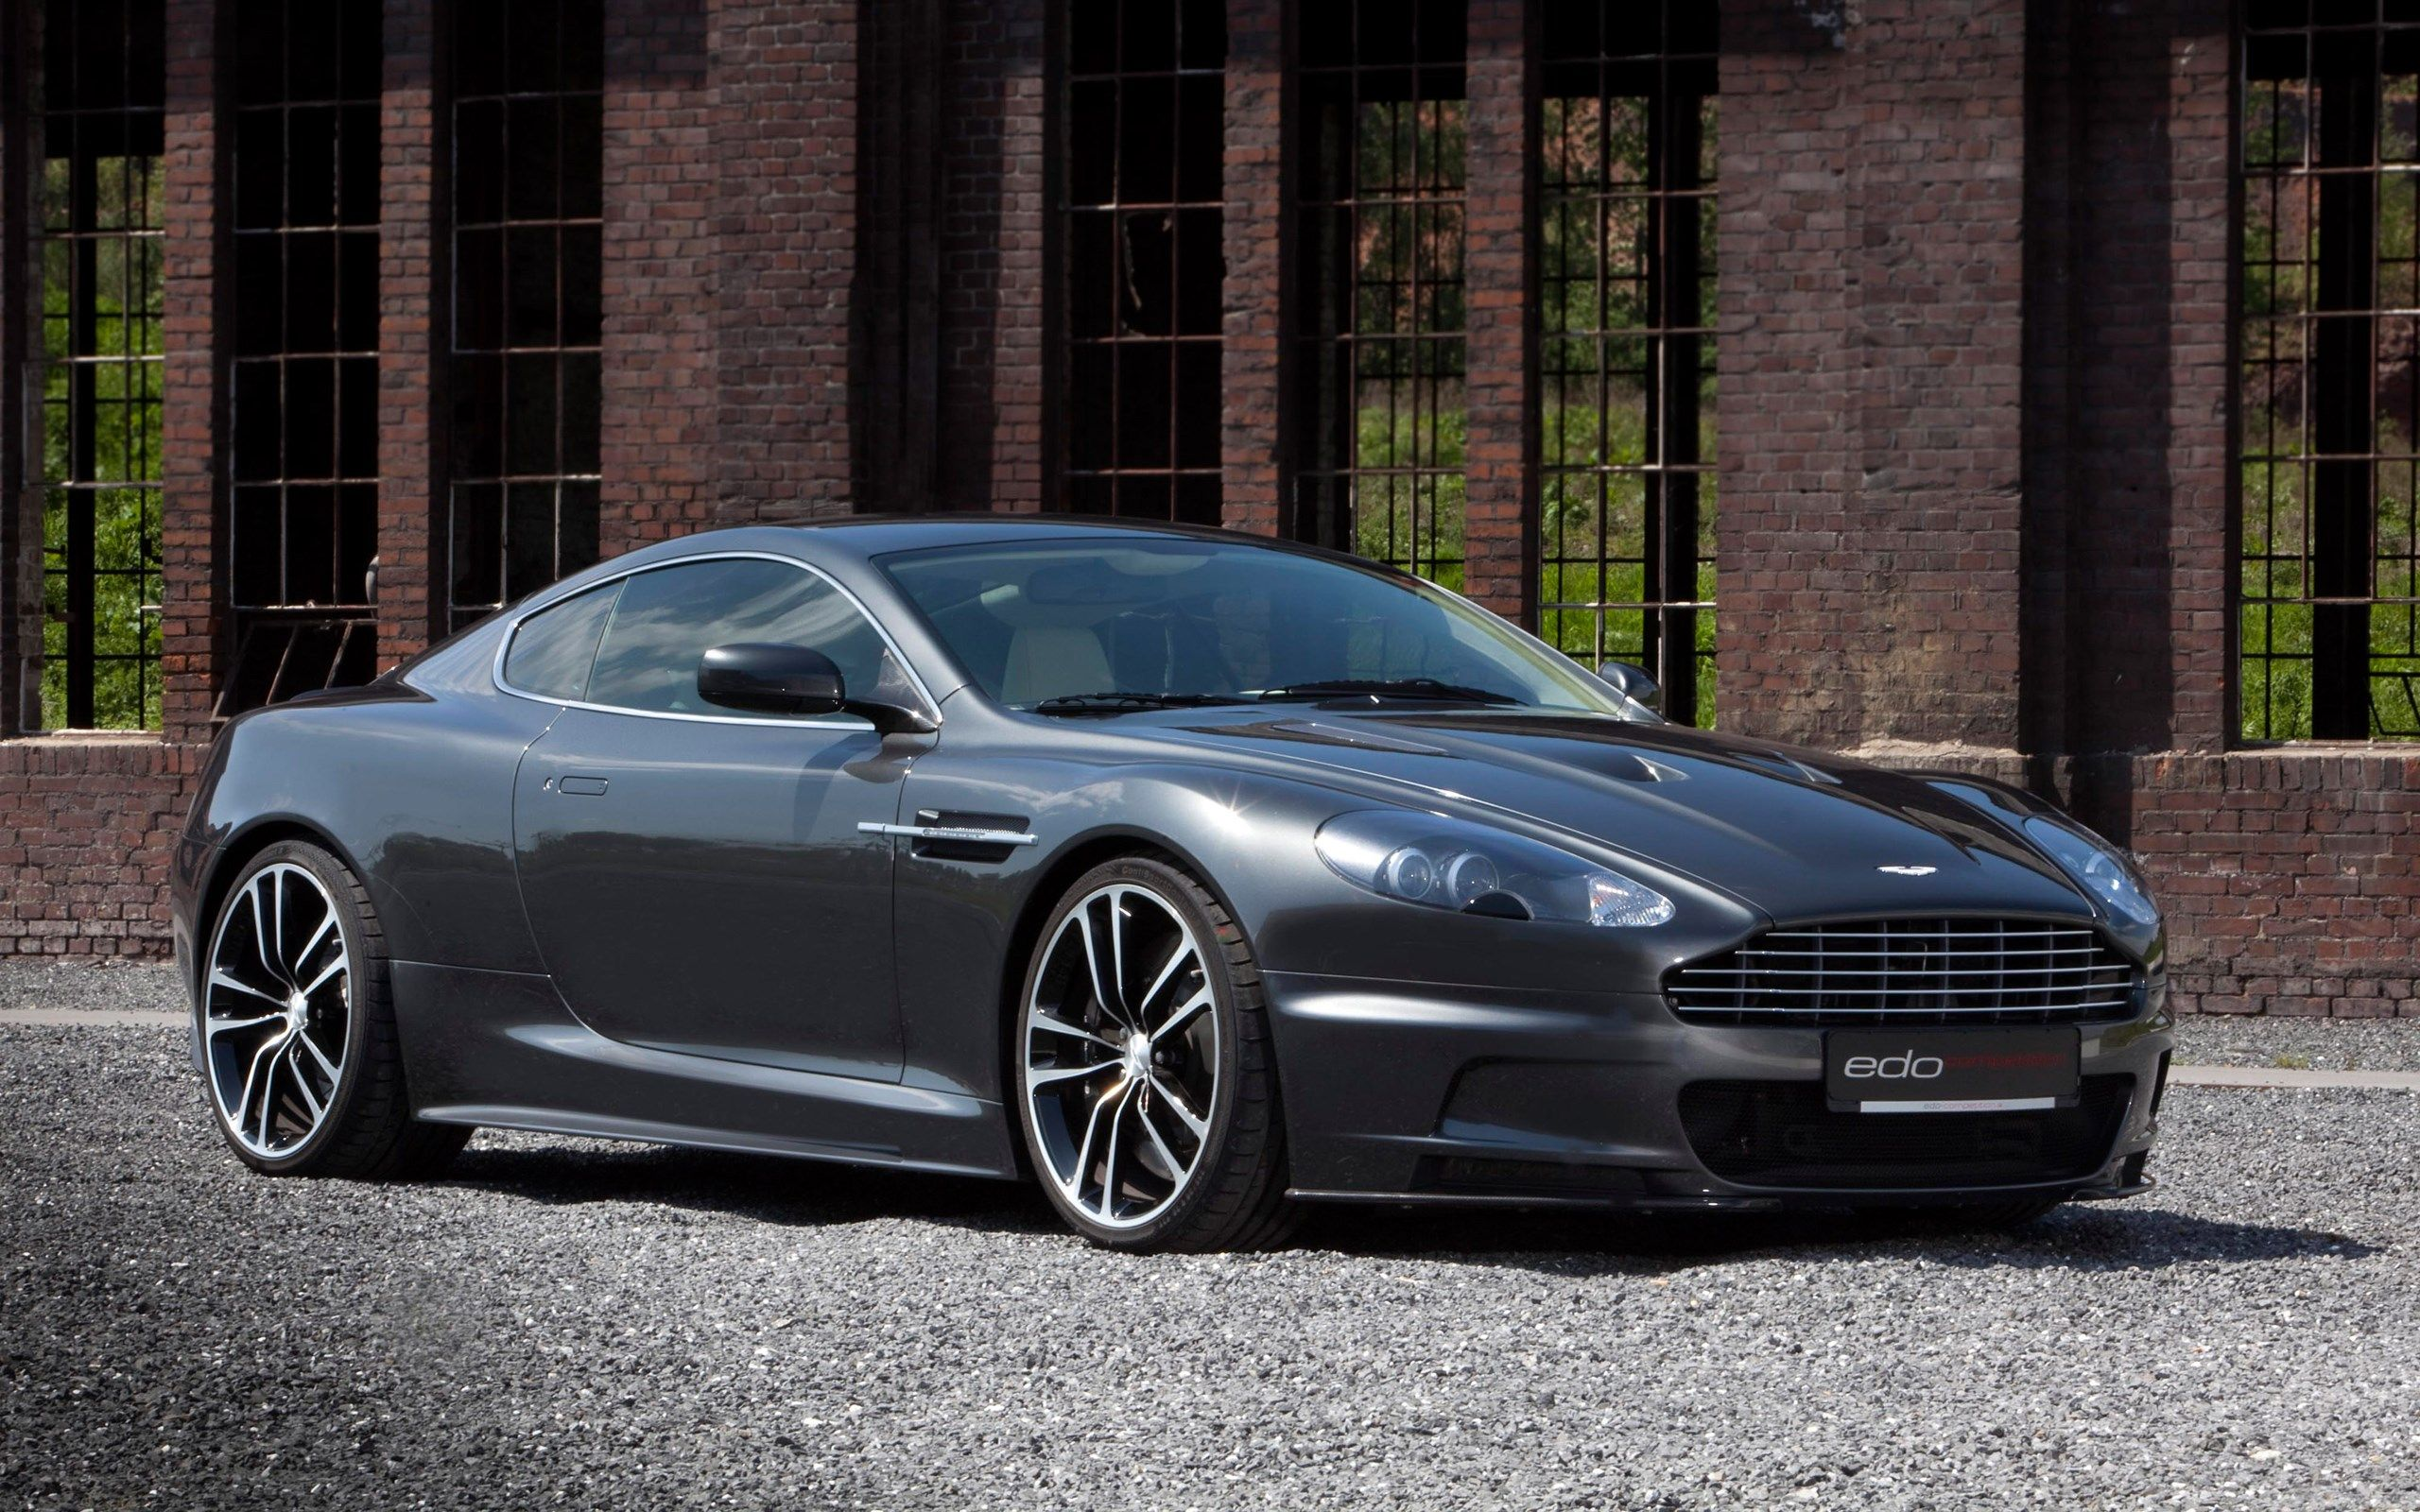 Category Aston Martin >> Aston Martin Db9 Image Background Hd Aston Martin Db9 Category